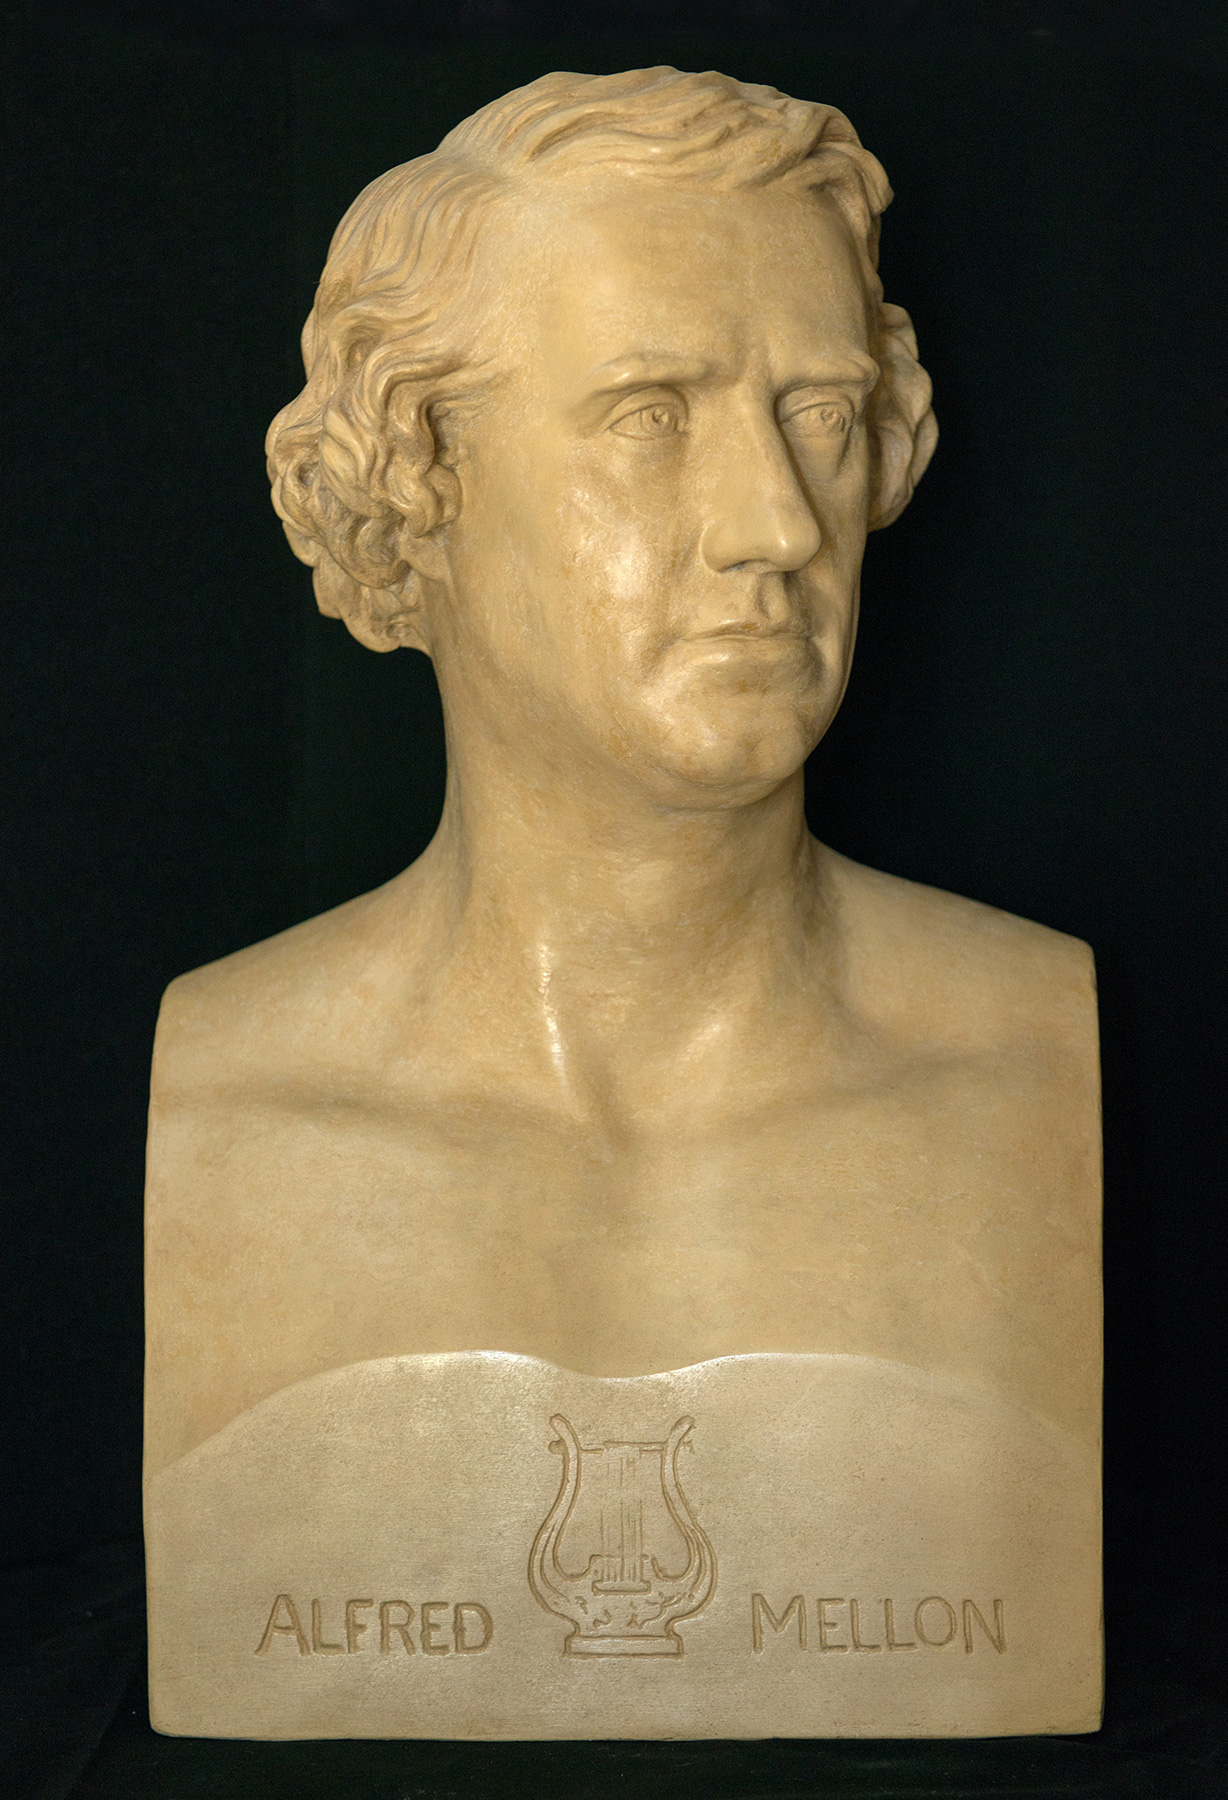 Plaster bust (1862) of Alfred Mellon by George James Somerton Miller (d.1876).